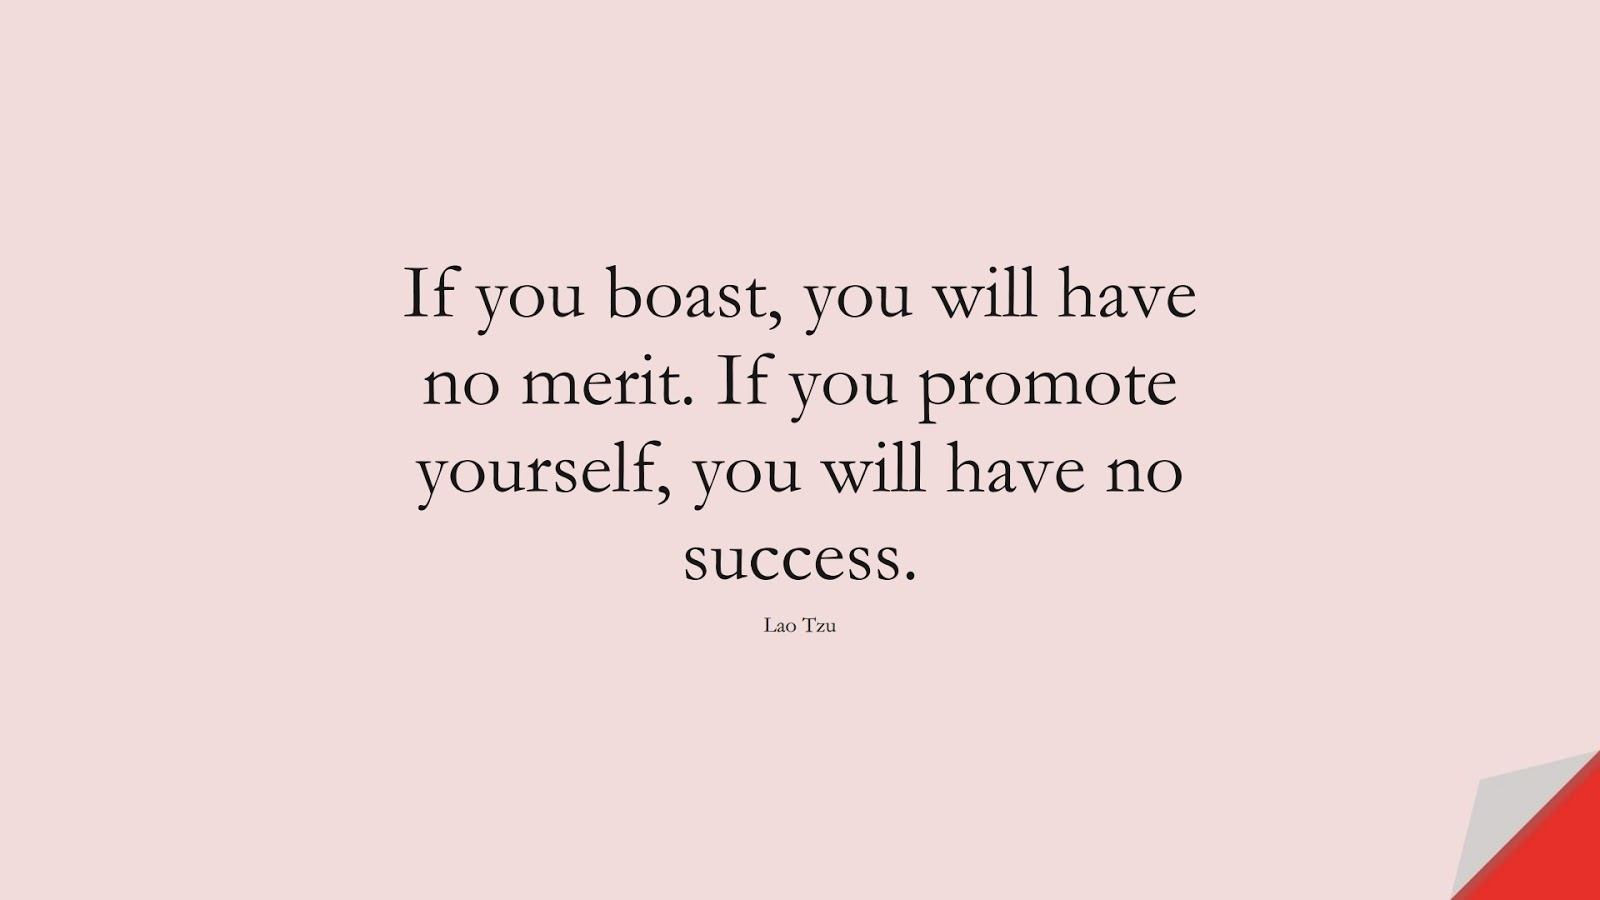 If you boast, you will have no merit. If you promote yourself, you will have no success. (Lao Tzu);  #SelfEsteemQuotes